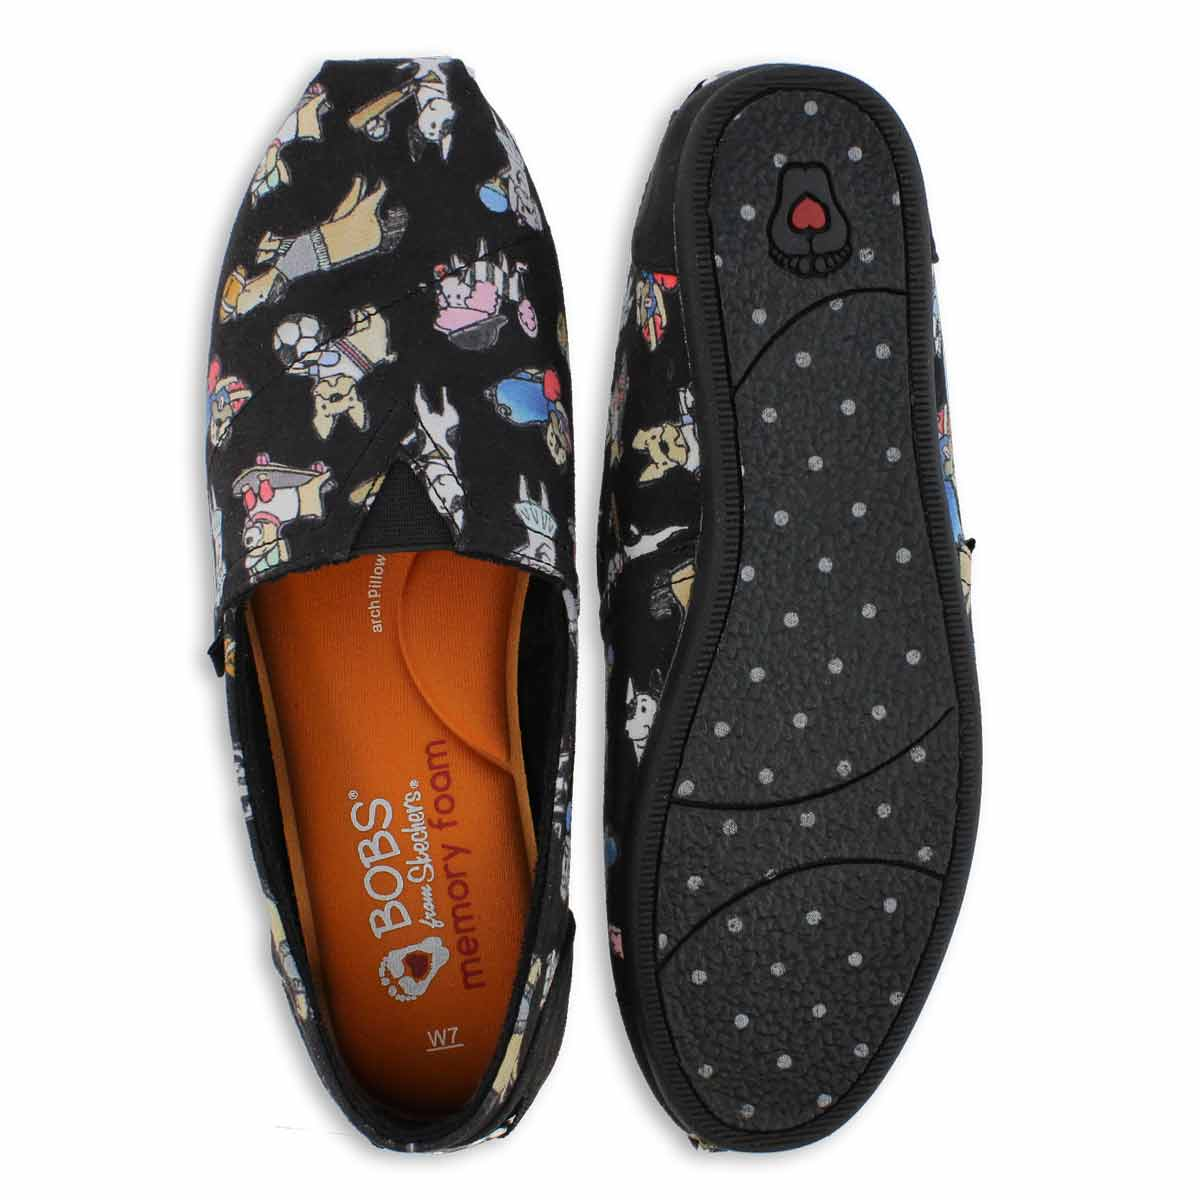 Lds Bobs Plush Go Fetch blk slip on